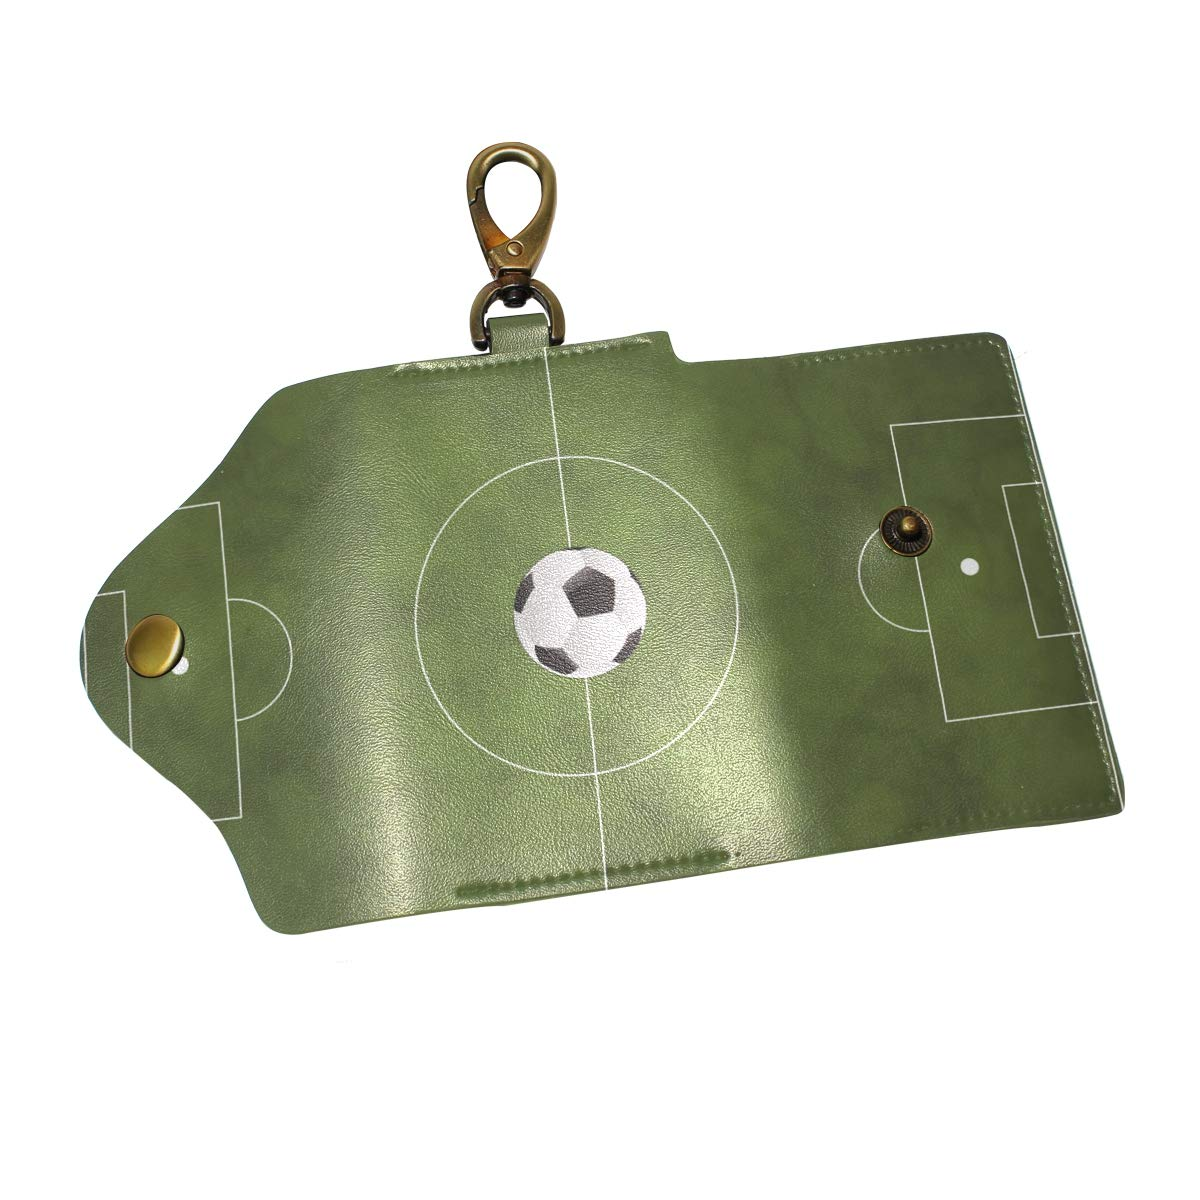 KEAKIA Soccer Green Field Leather Key Case Wallets Tri-fold Key Holder Keychains with 6 Hooks 2 Slot Snap Closure for Men Women